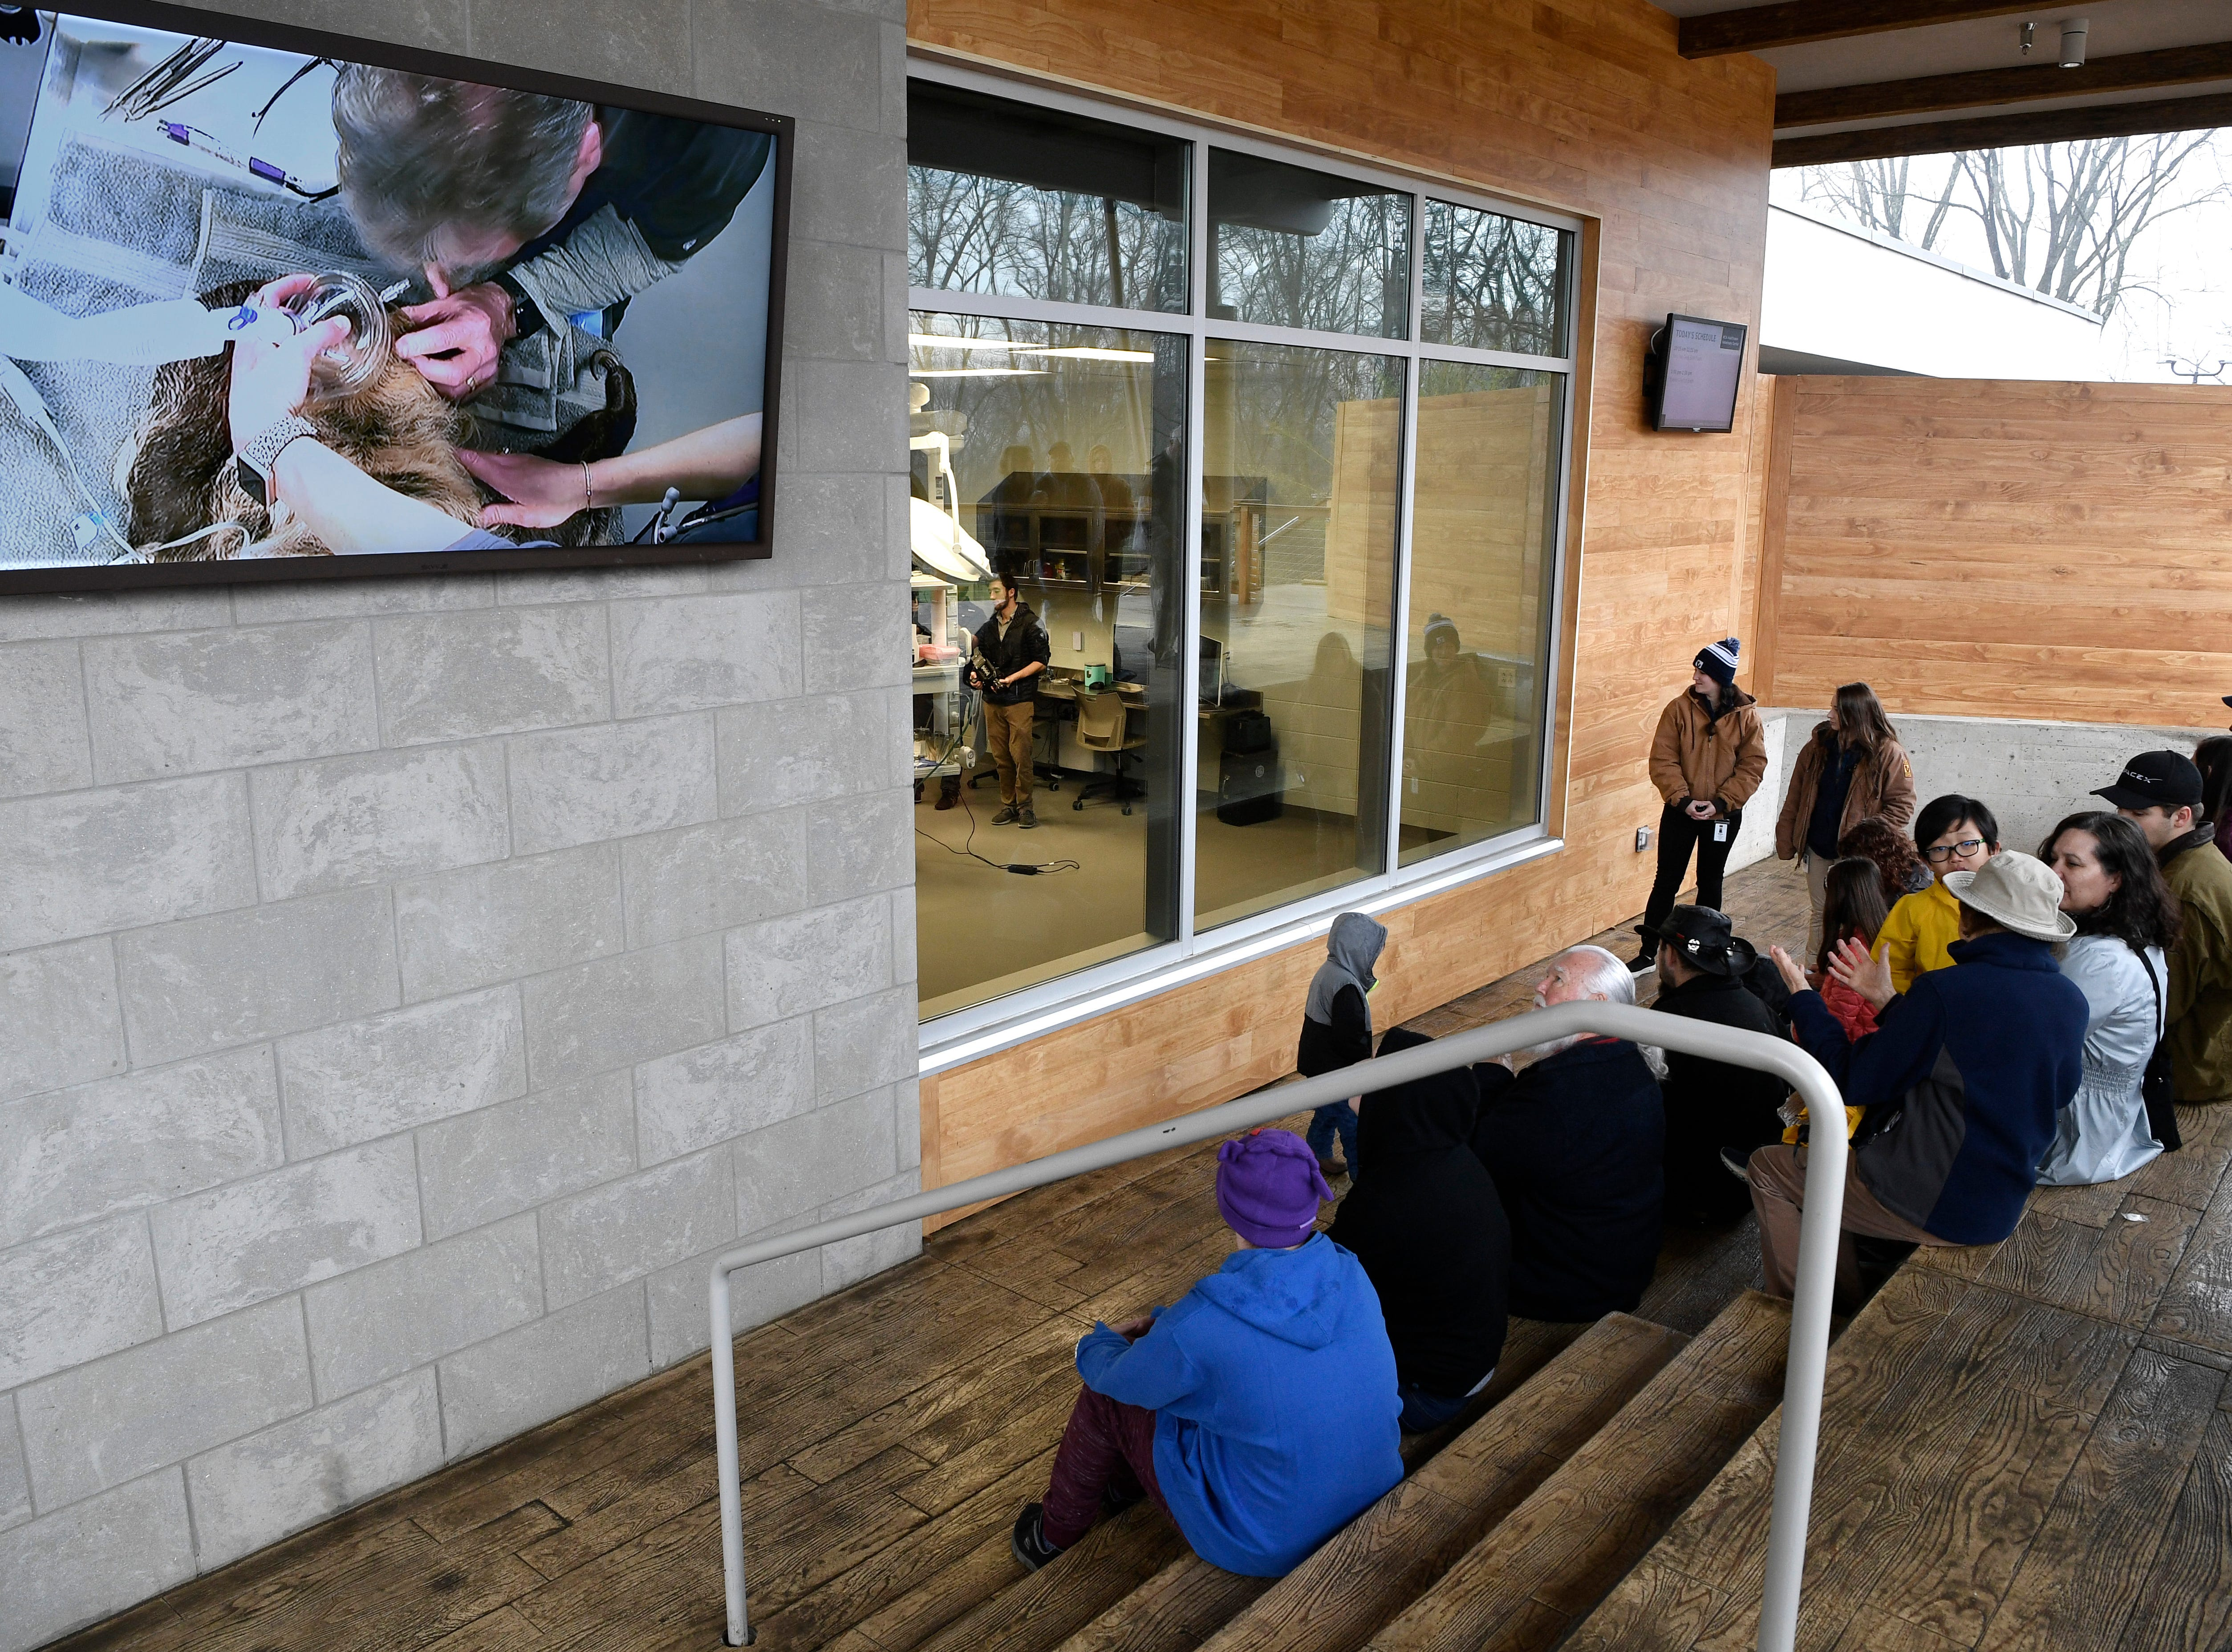 The public is able to view procedures through a window and also on a large screen outside the operating room at the new 23,000 square-foot HCA Healthcare Veterinary Center at the Nashville Zoo Friday, March 8, 2019, in Nashville, Tenn.